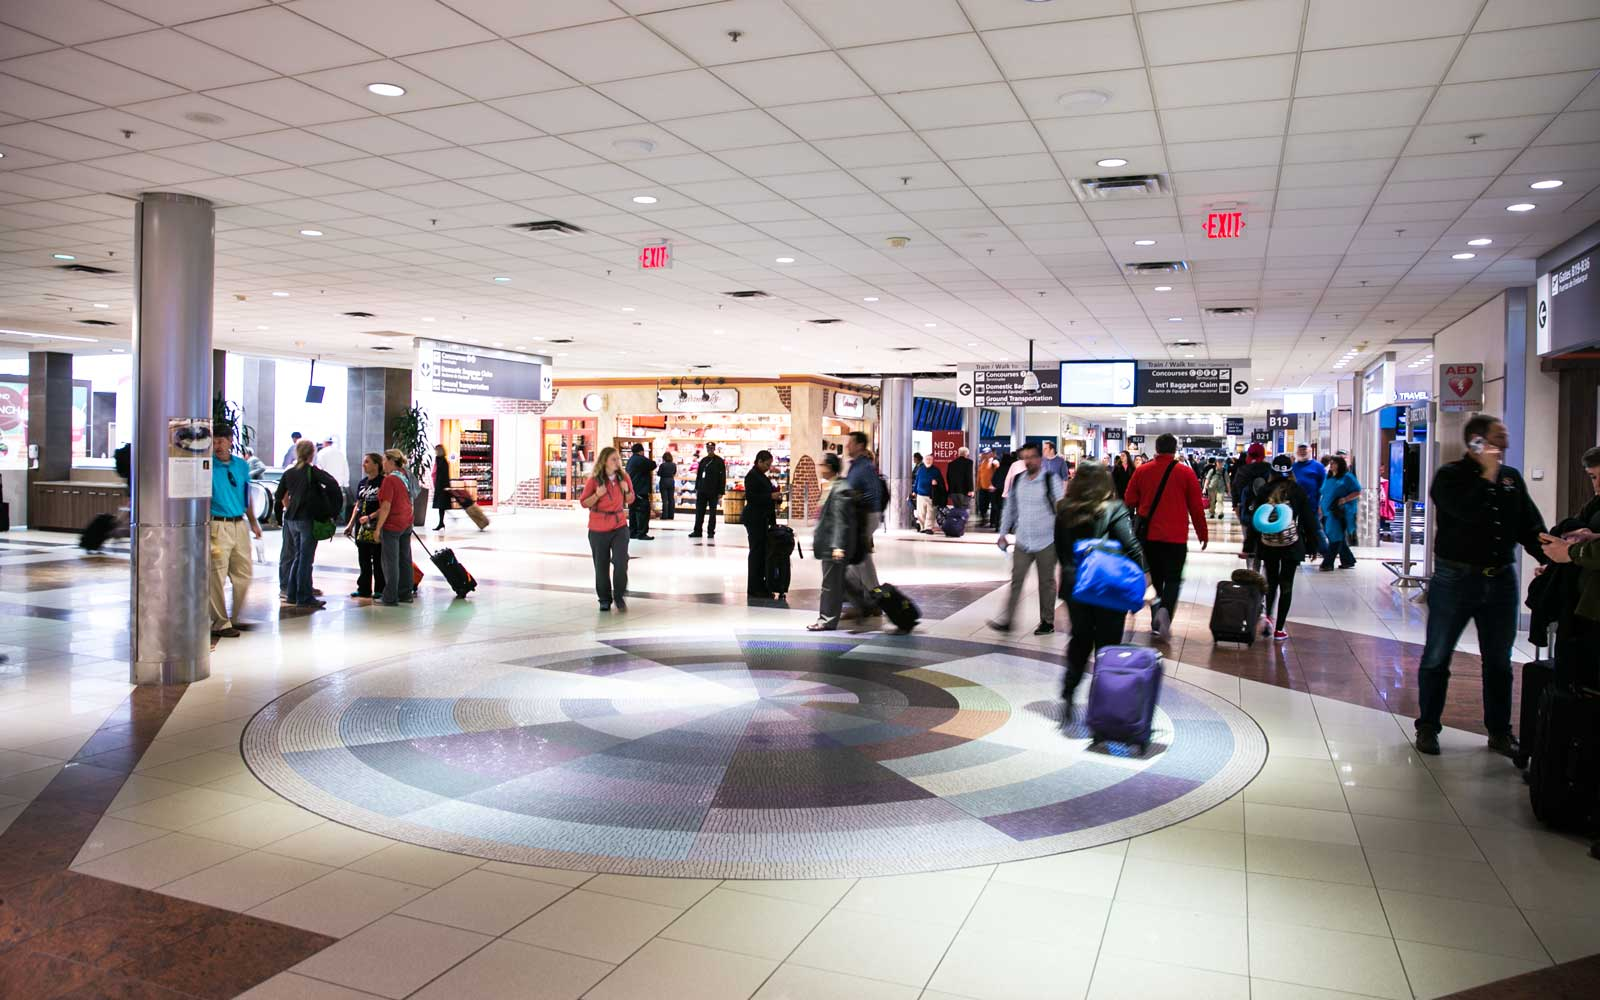 Atlanta Airport Concourse B Map Atlanta Airport Map and Terminal Guide: How to Make the Most of